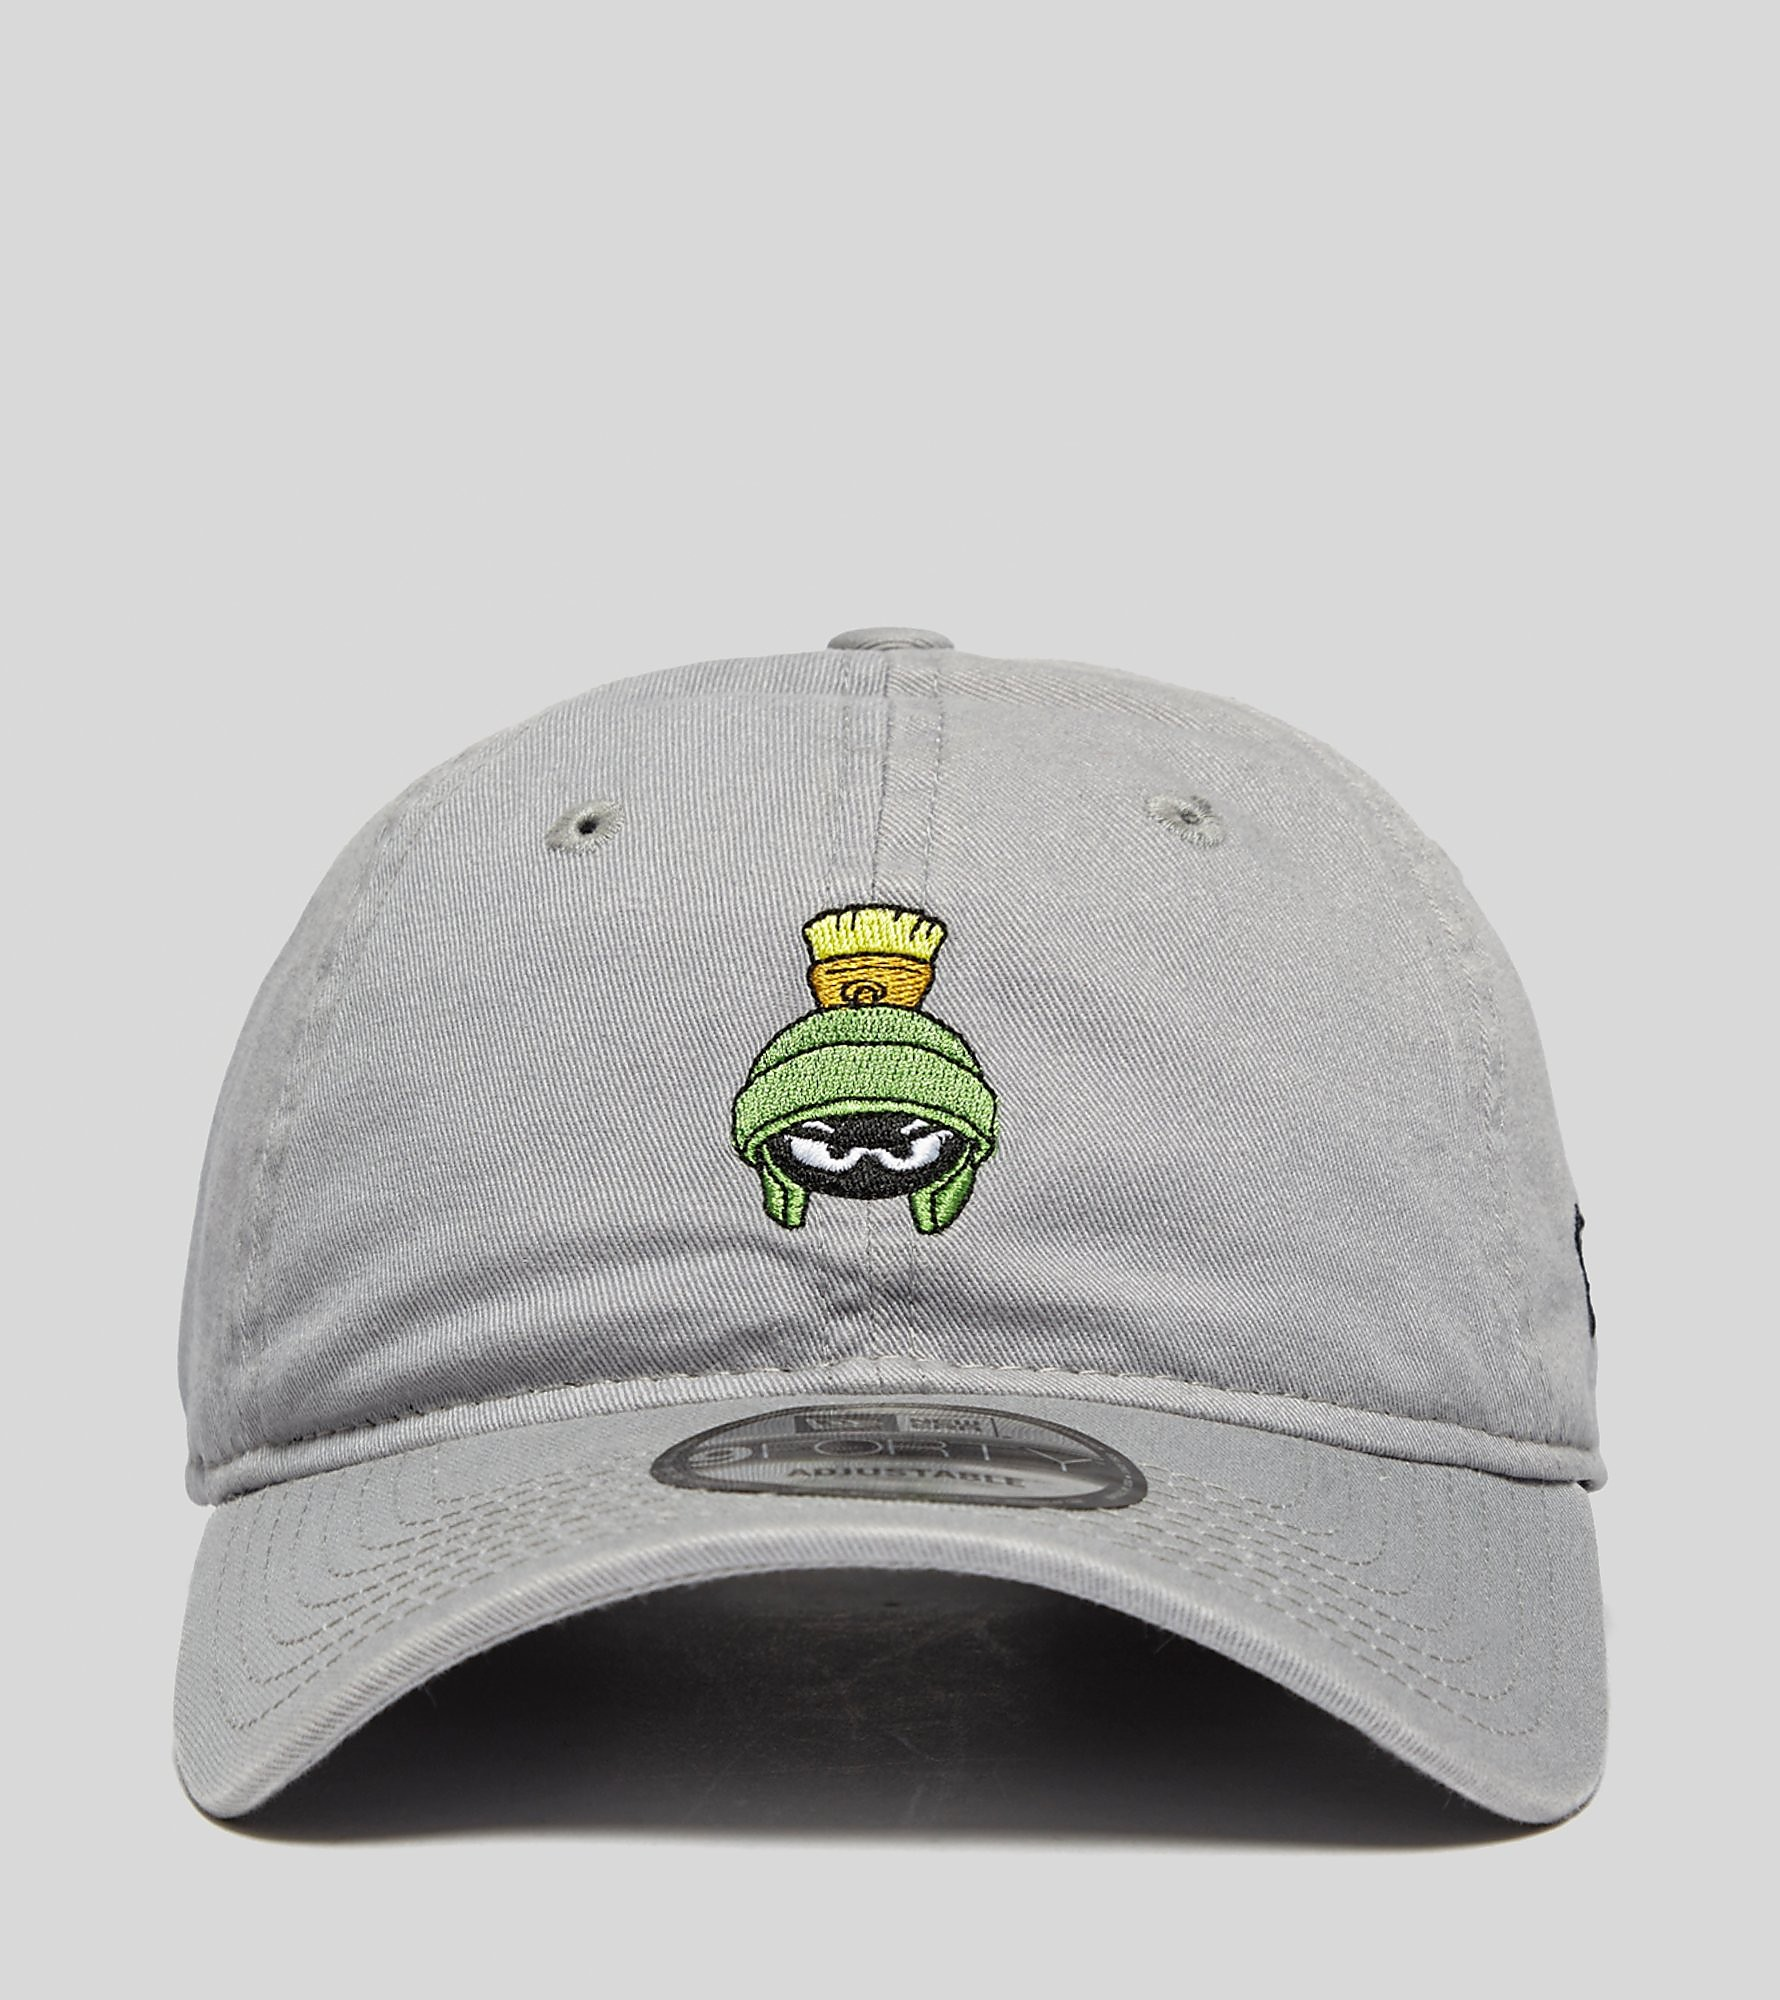 New Era 9FORTY Looney Tunes Marvin the Martian Cap